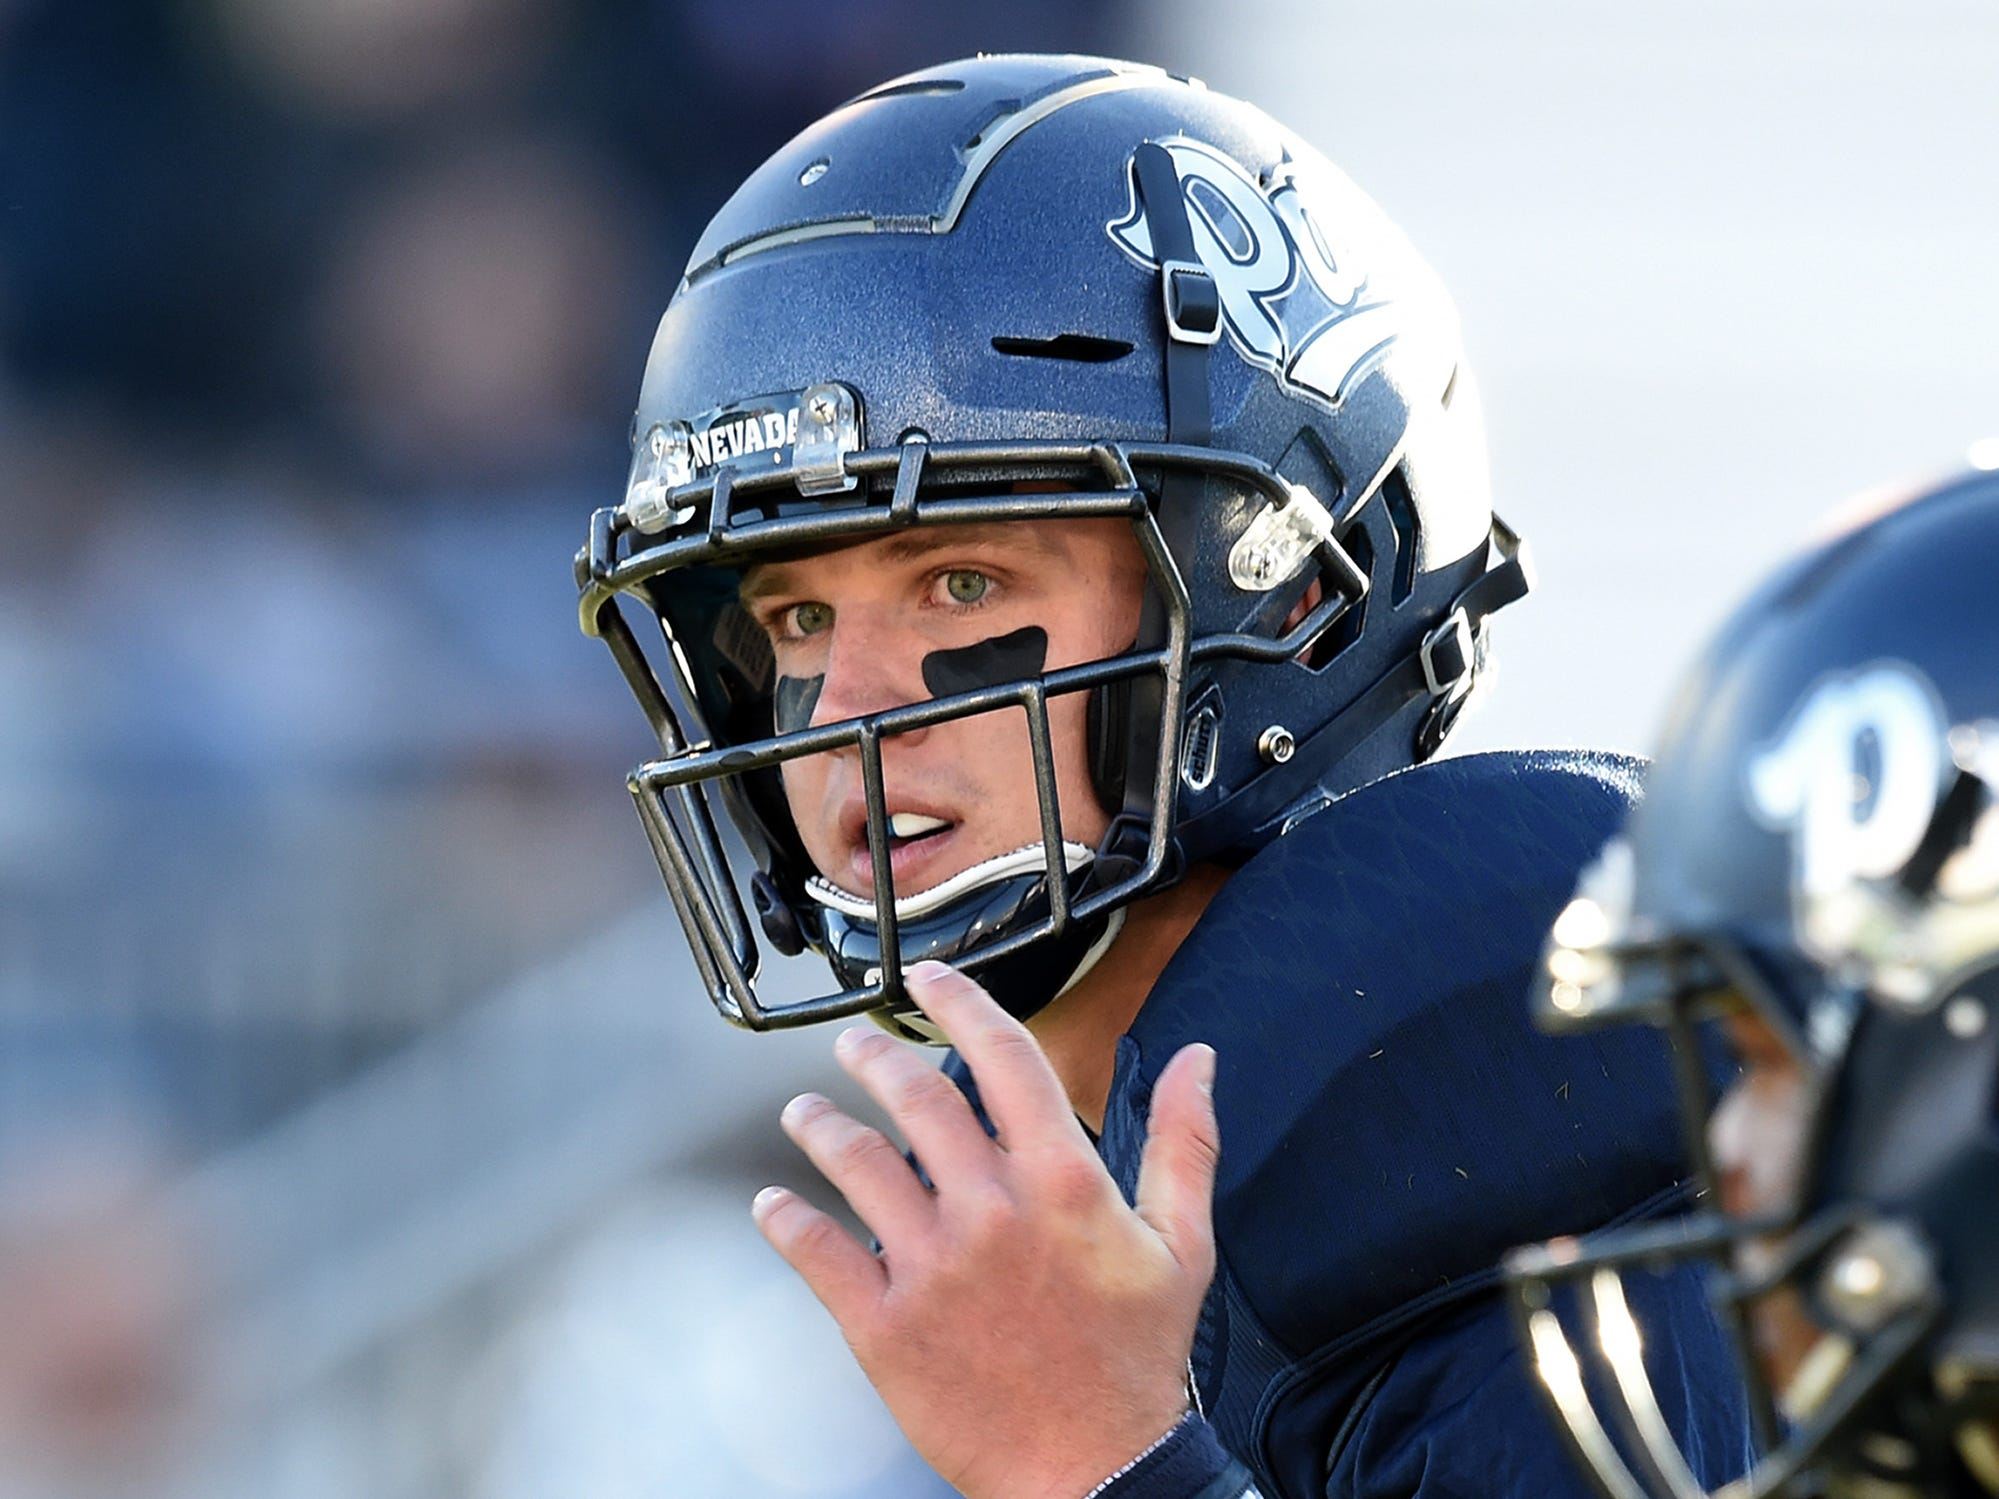 Nevada QB Ty Gangi signals during a play against Oregon State at Mackay Stadium on Sept. 15, 2018.